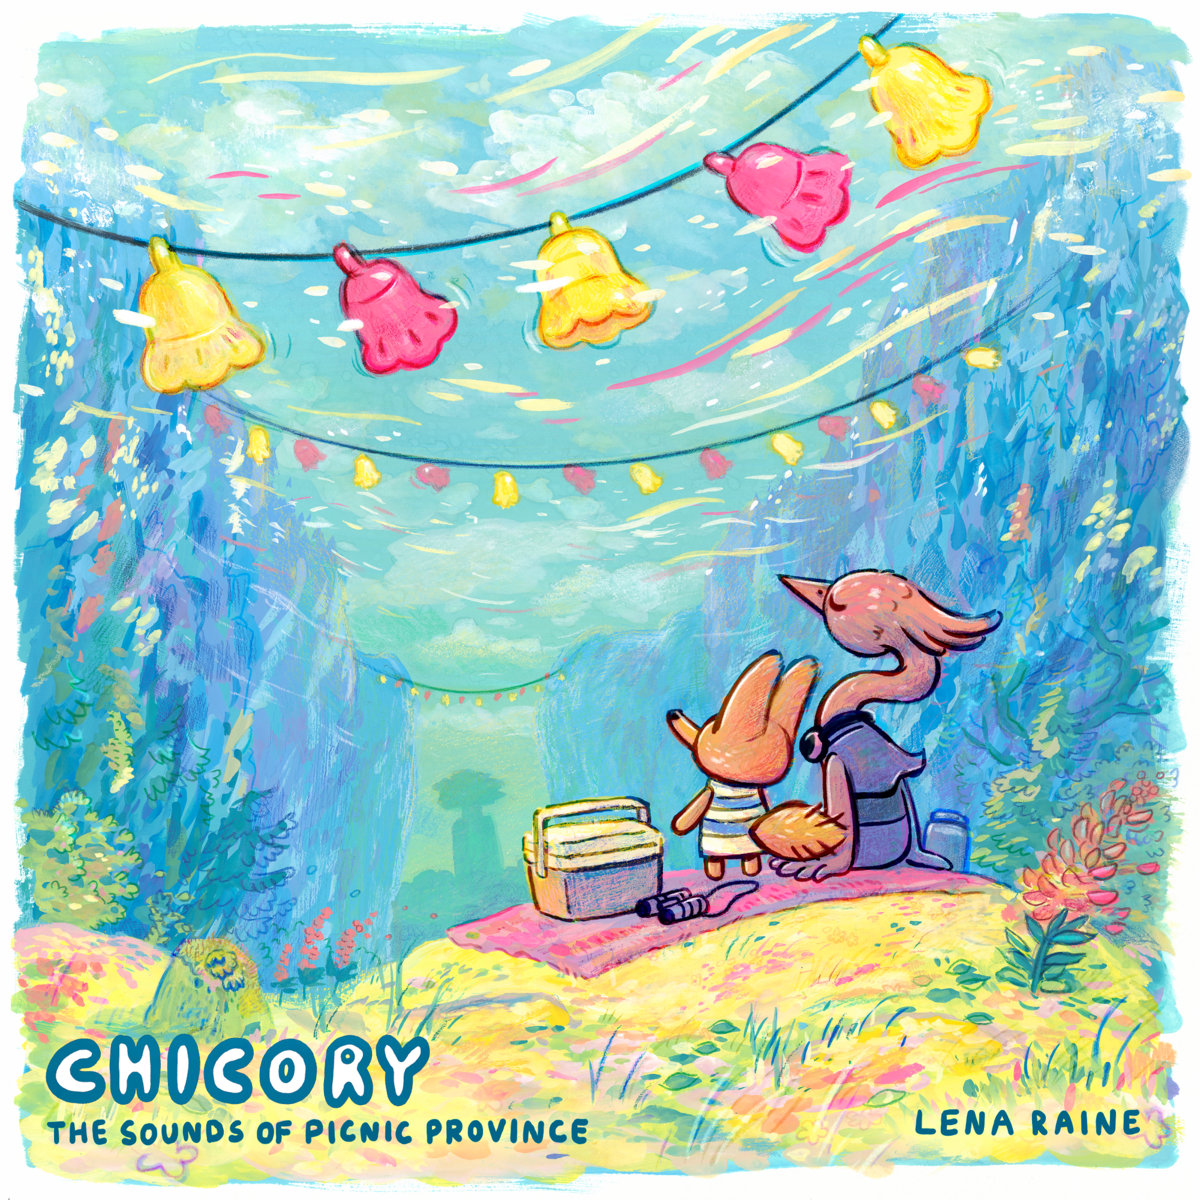 """Illustrative, drawing style, colored artwork for the cover of """"Chicory: The Sounds of Picnic Province"""""""